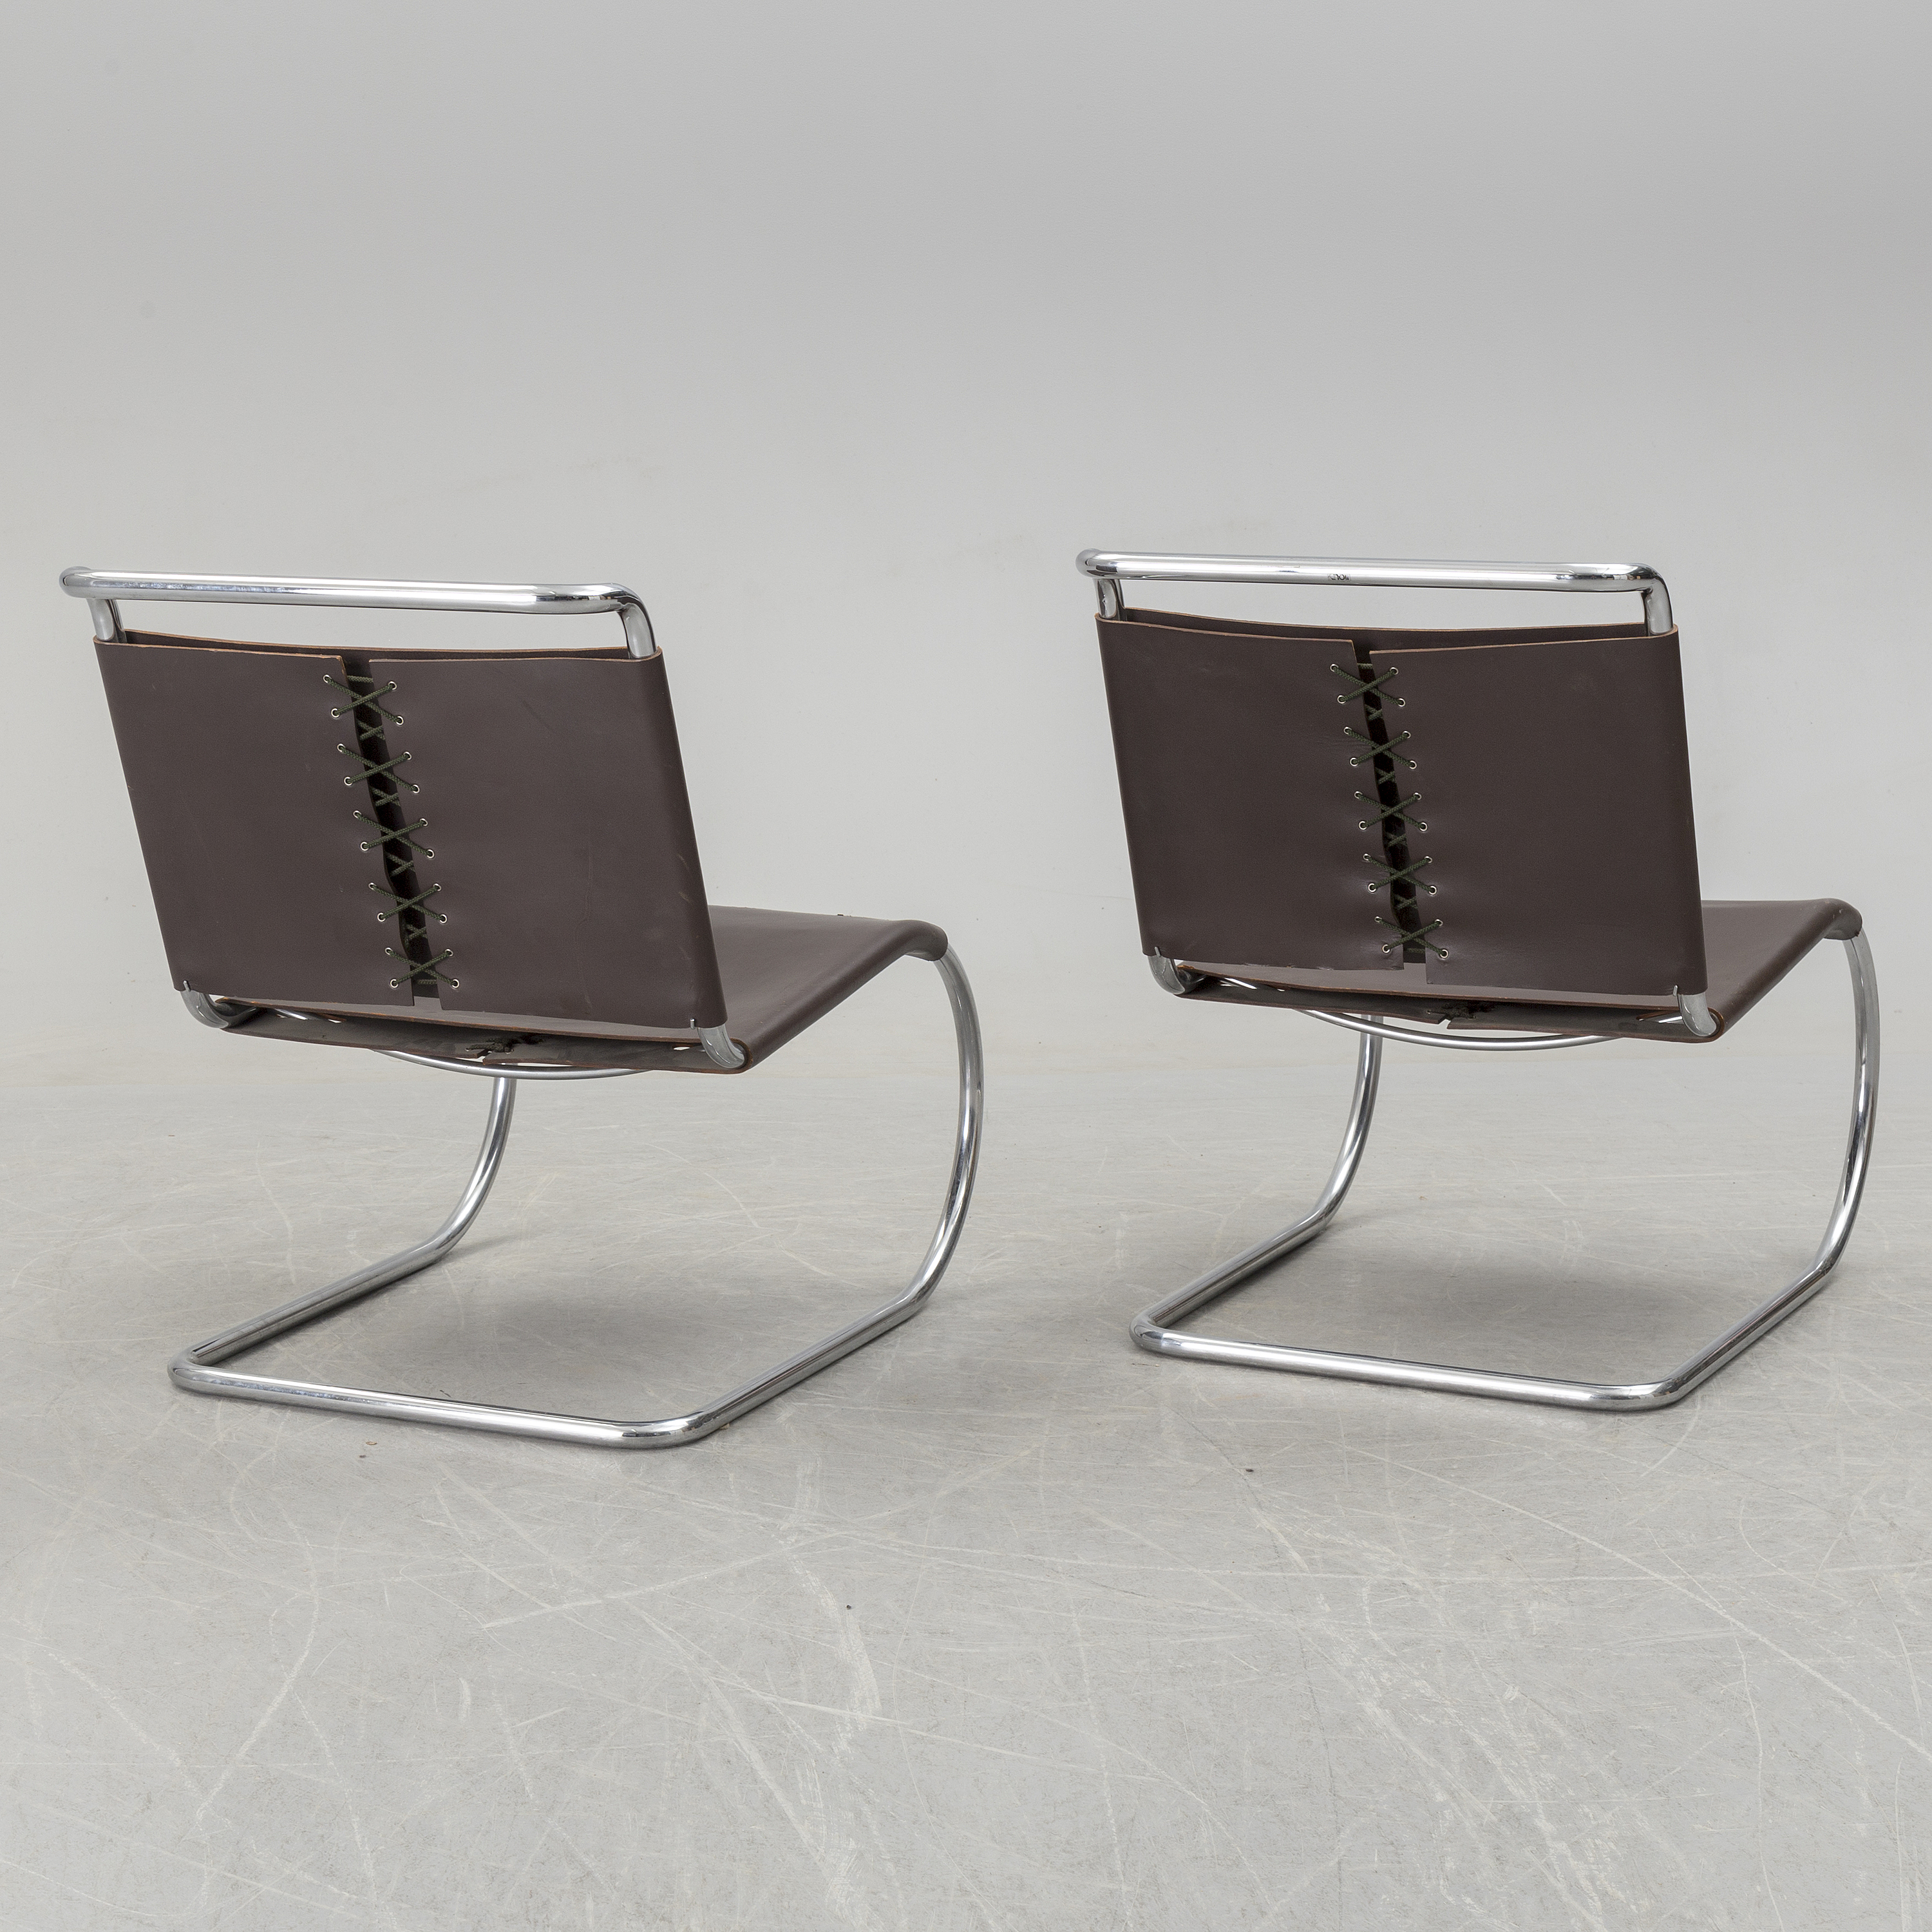 Surprising A Pair Of Mr Lounge Chairs By Ludwig Mies Van Der Rohe Squirreltailoven Fun Painted Chair Ideas Images Squirreltailovenorg